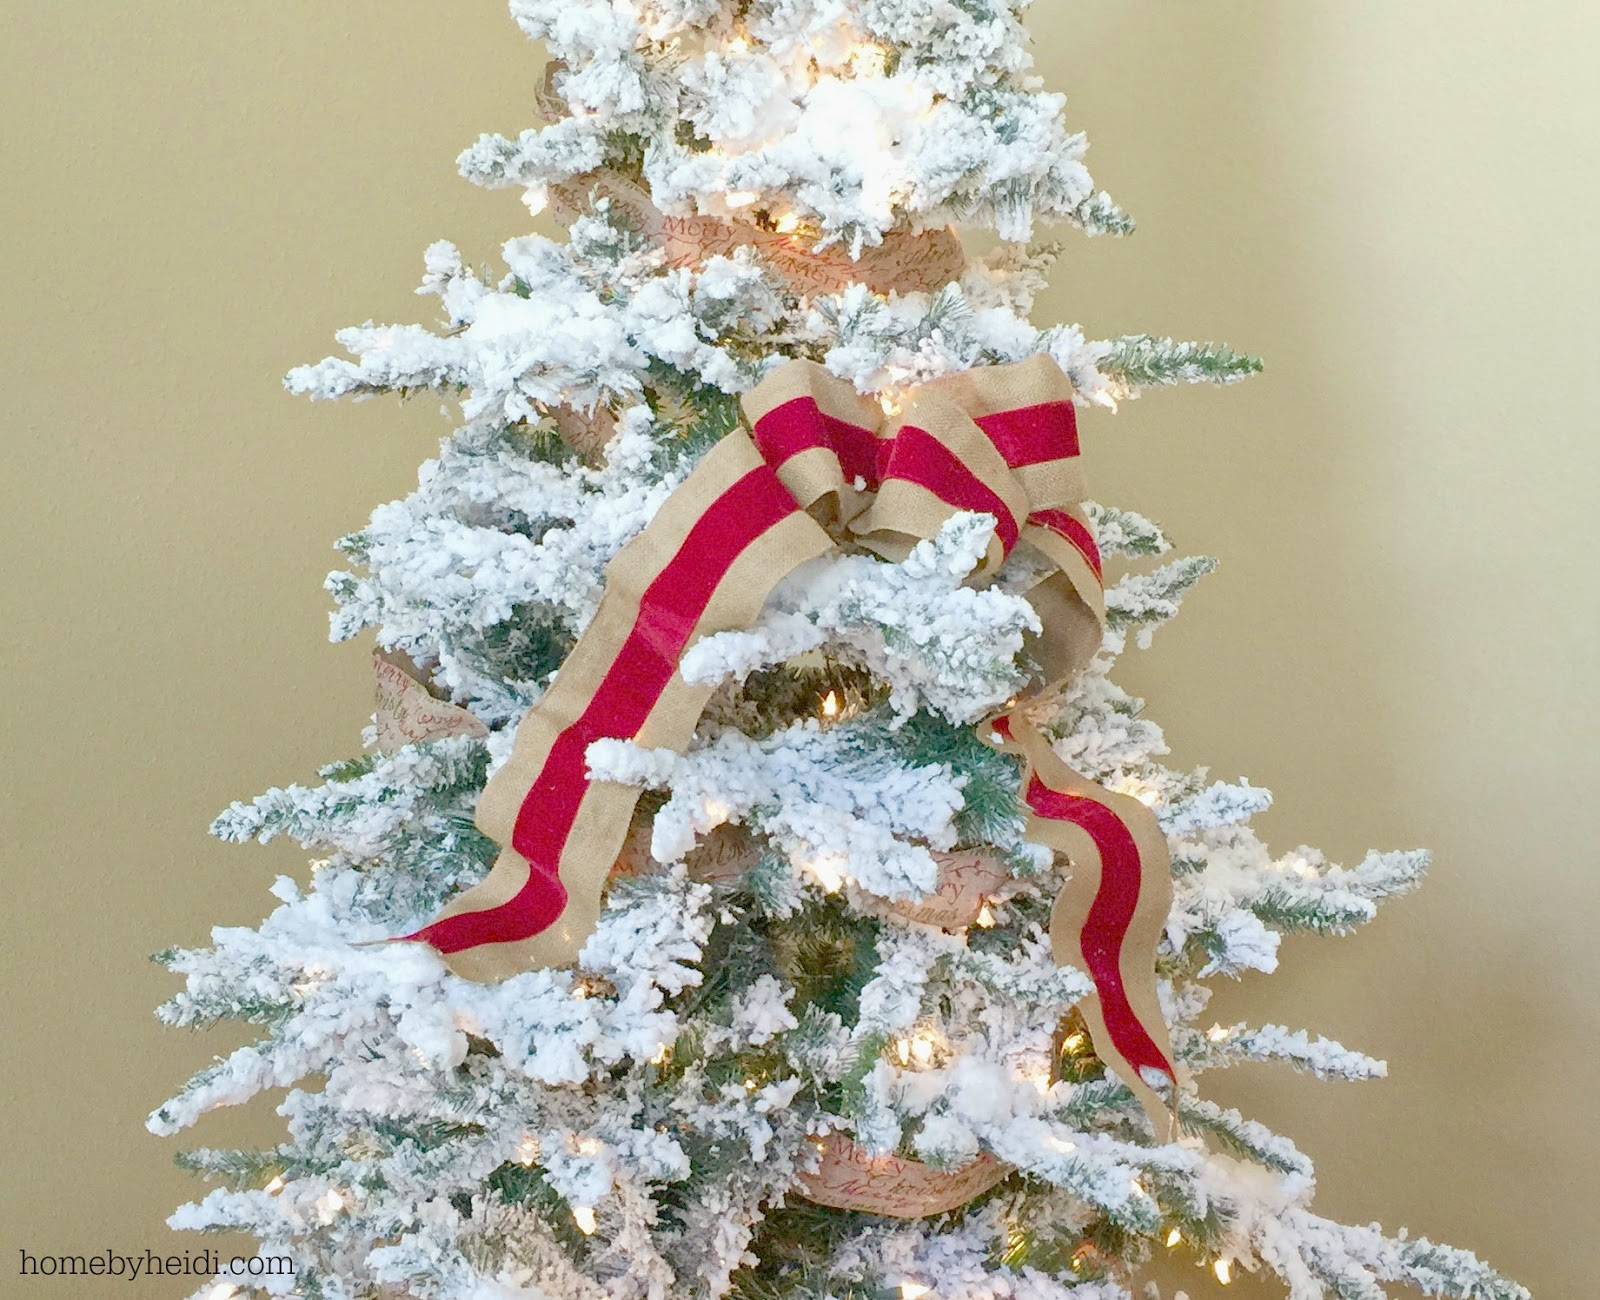 Home By Heidi: Christmas Tree Ribbon